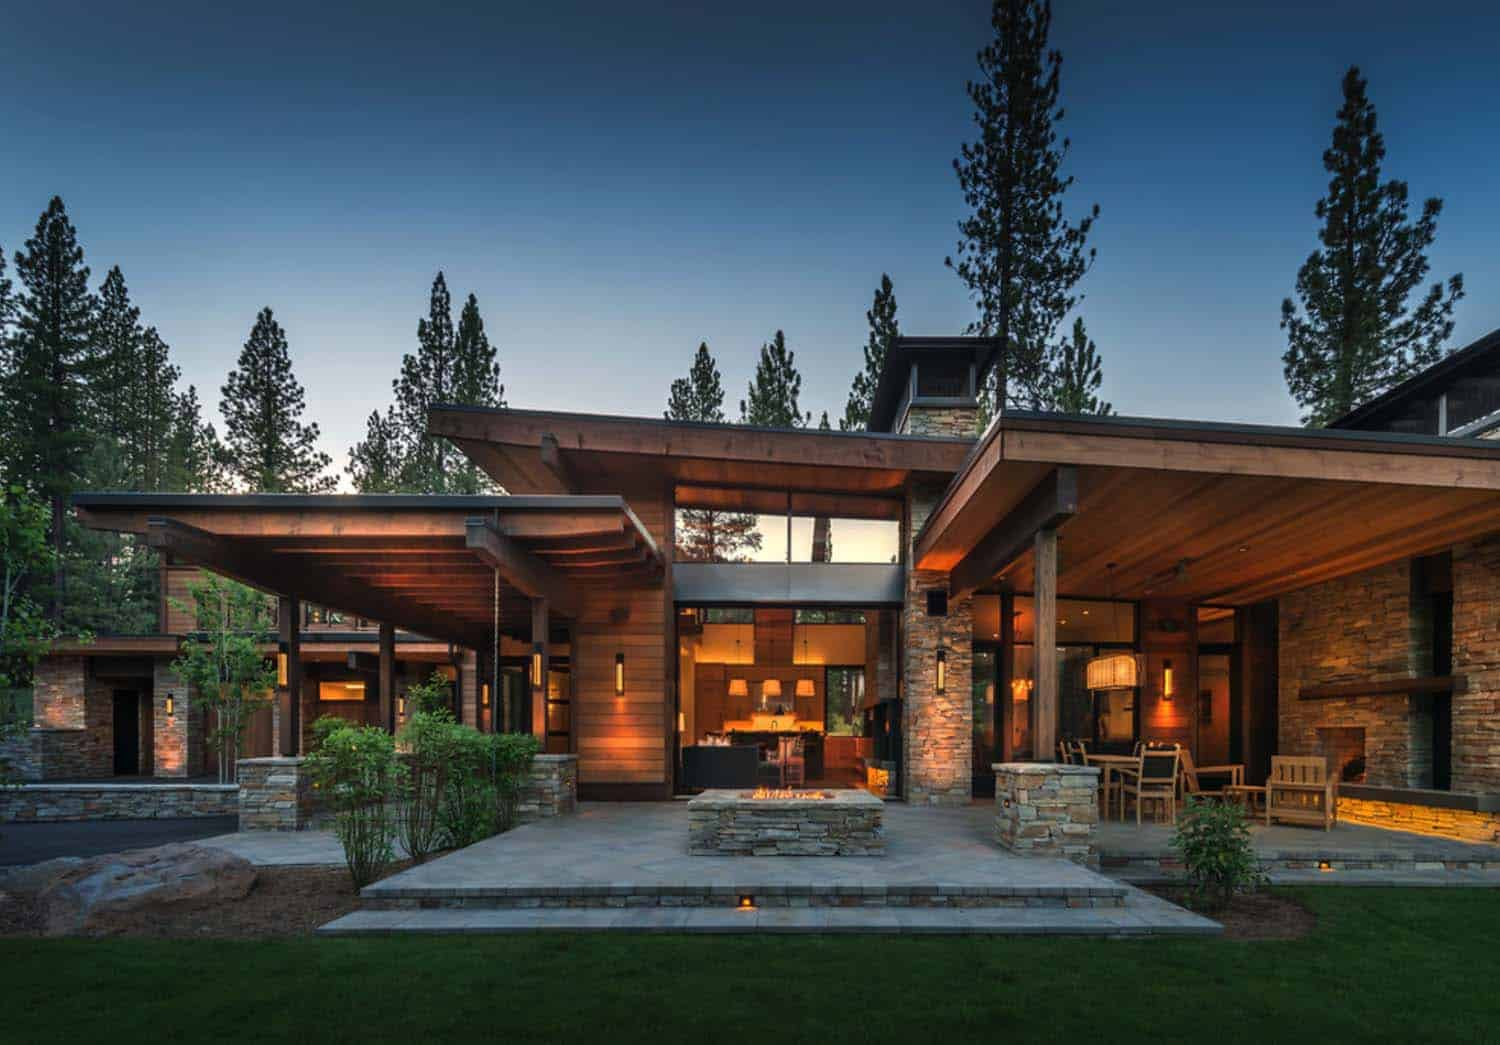 Mountain modern home in martis camp with indoor outdoor living for Mountain modern house plans